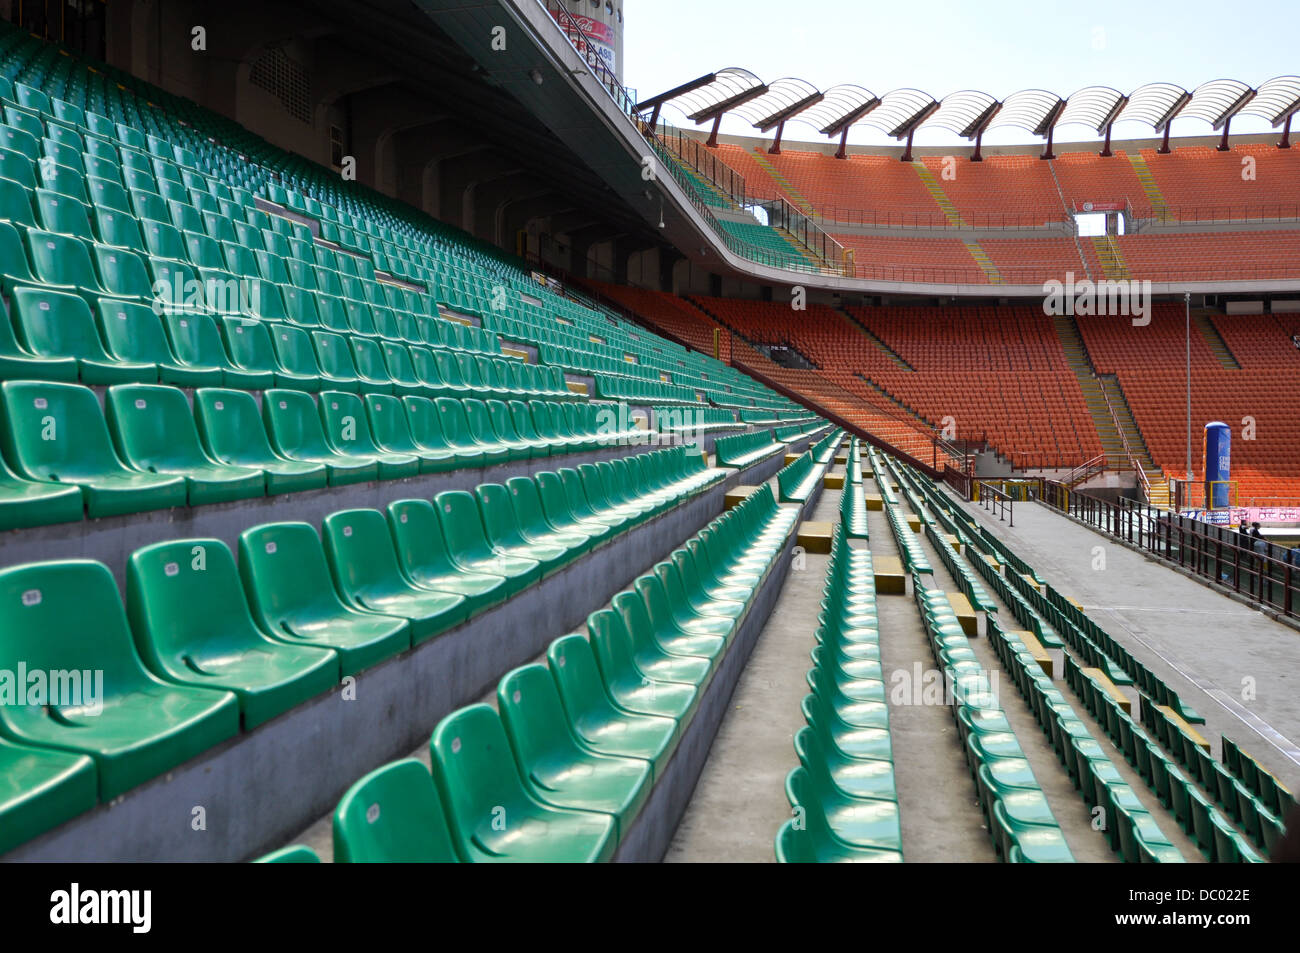 Milan San siro stadium in a wide angle lens, one of most famous football stadium in the world. Stock Photo